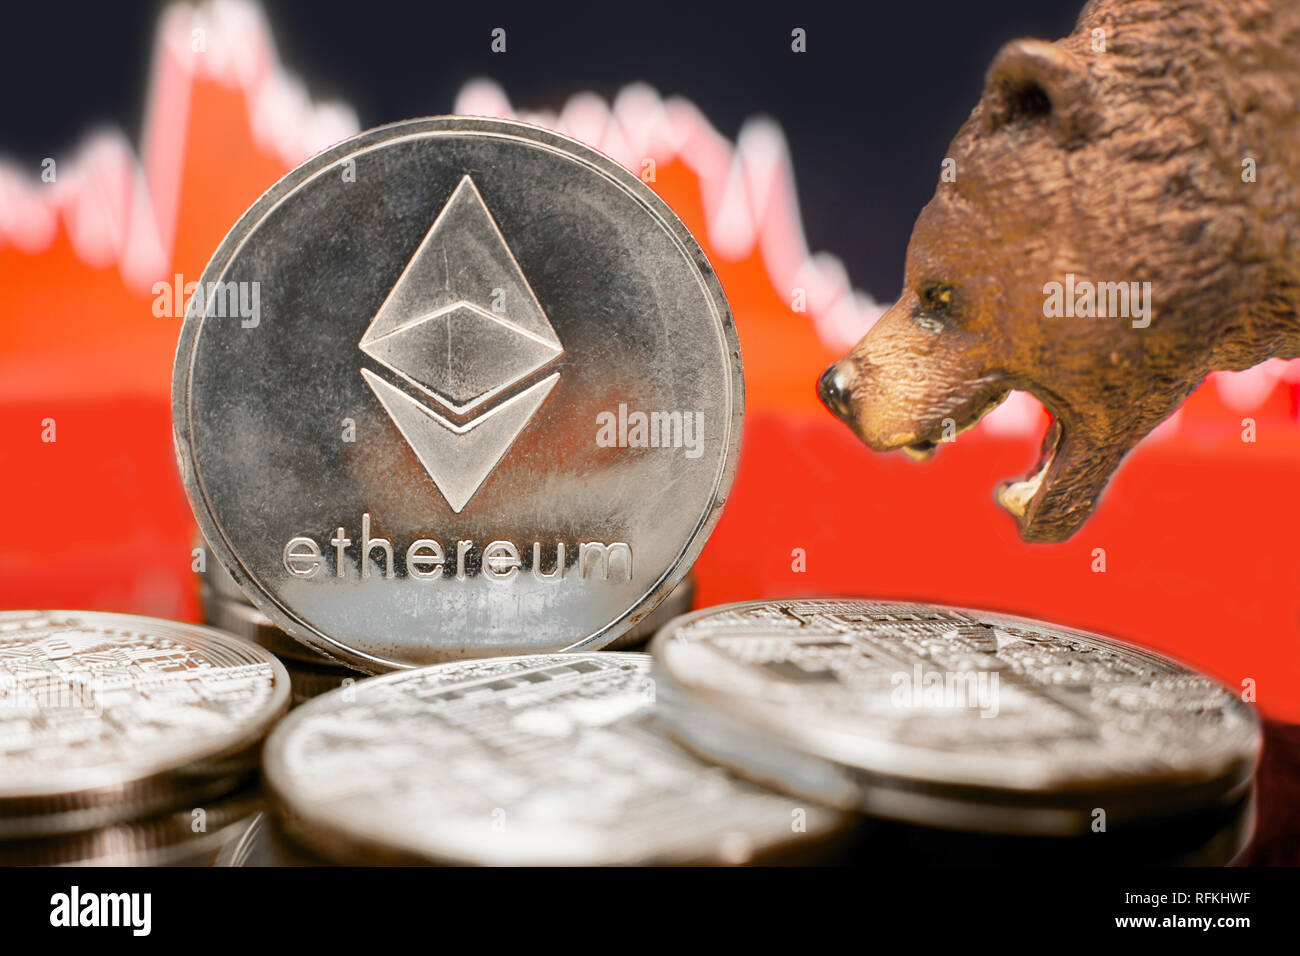 Ethereum with a red chart drop. Price crash and bear market trend concept. - Stock Image